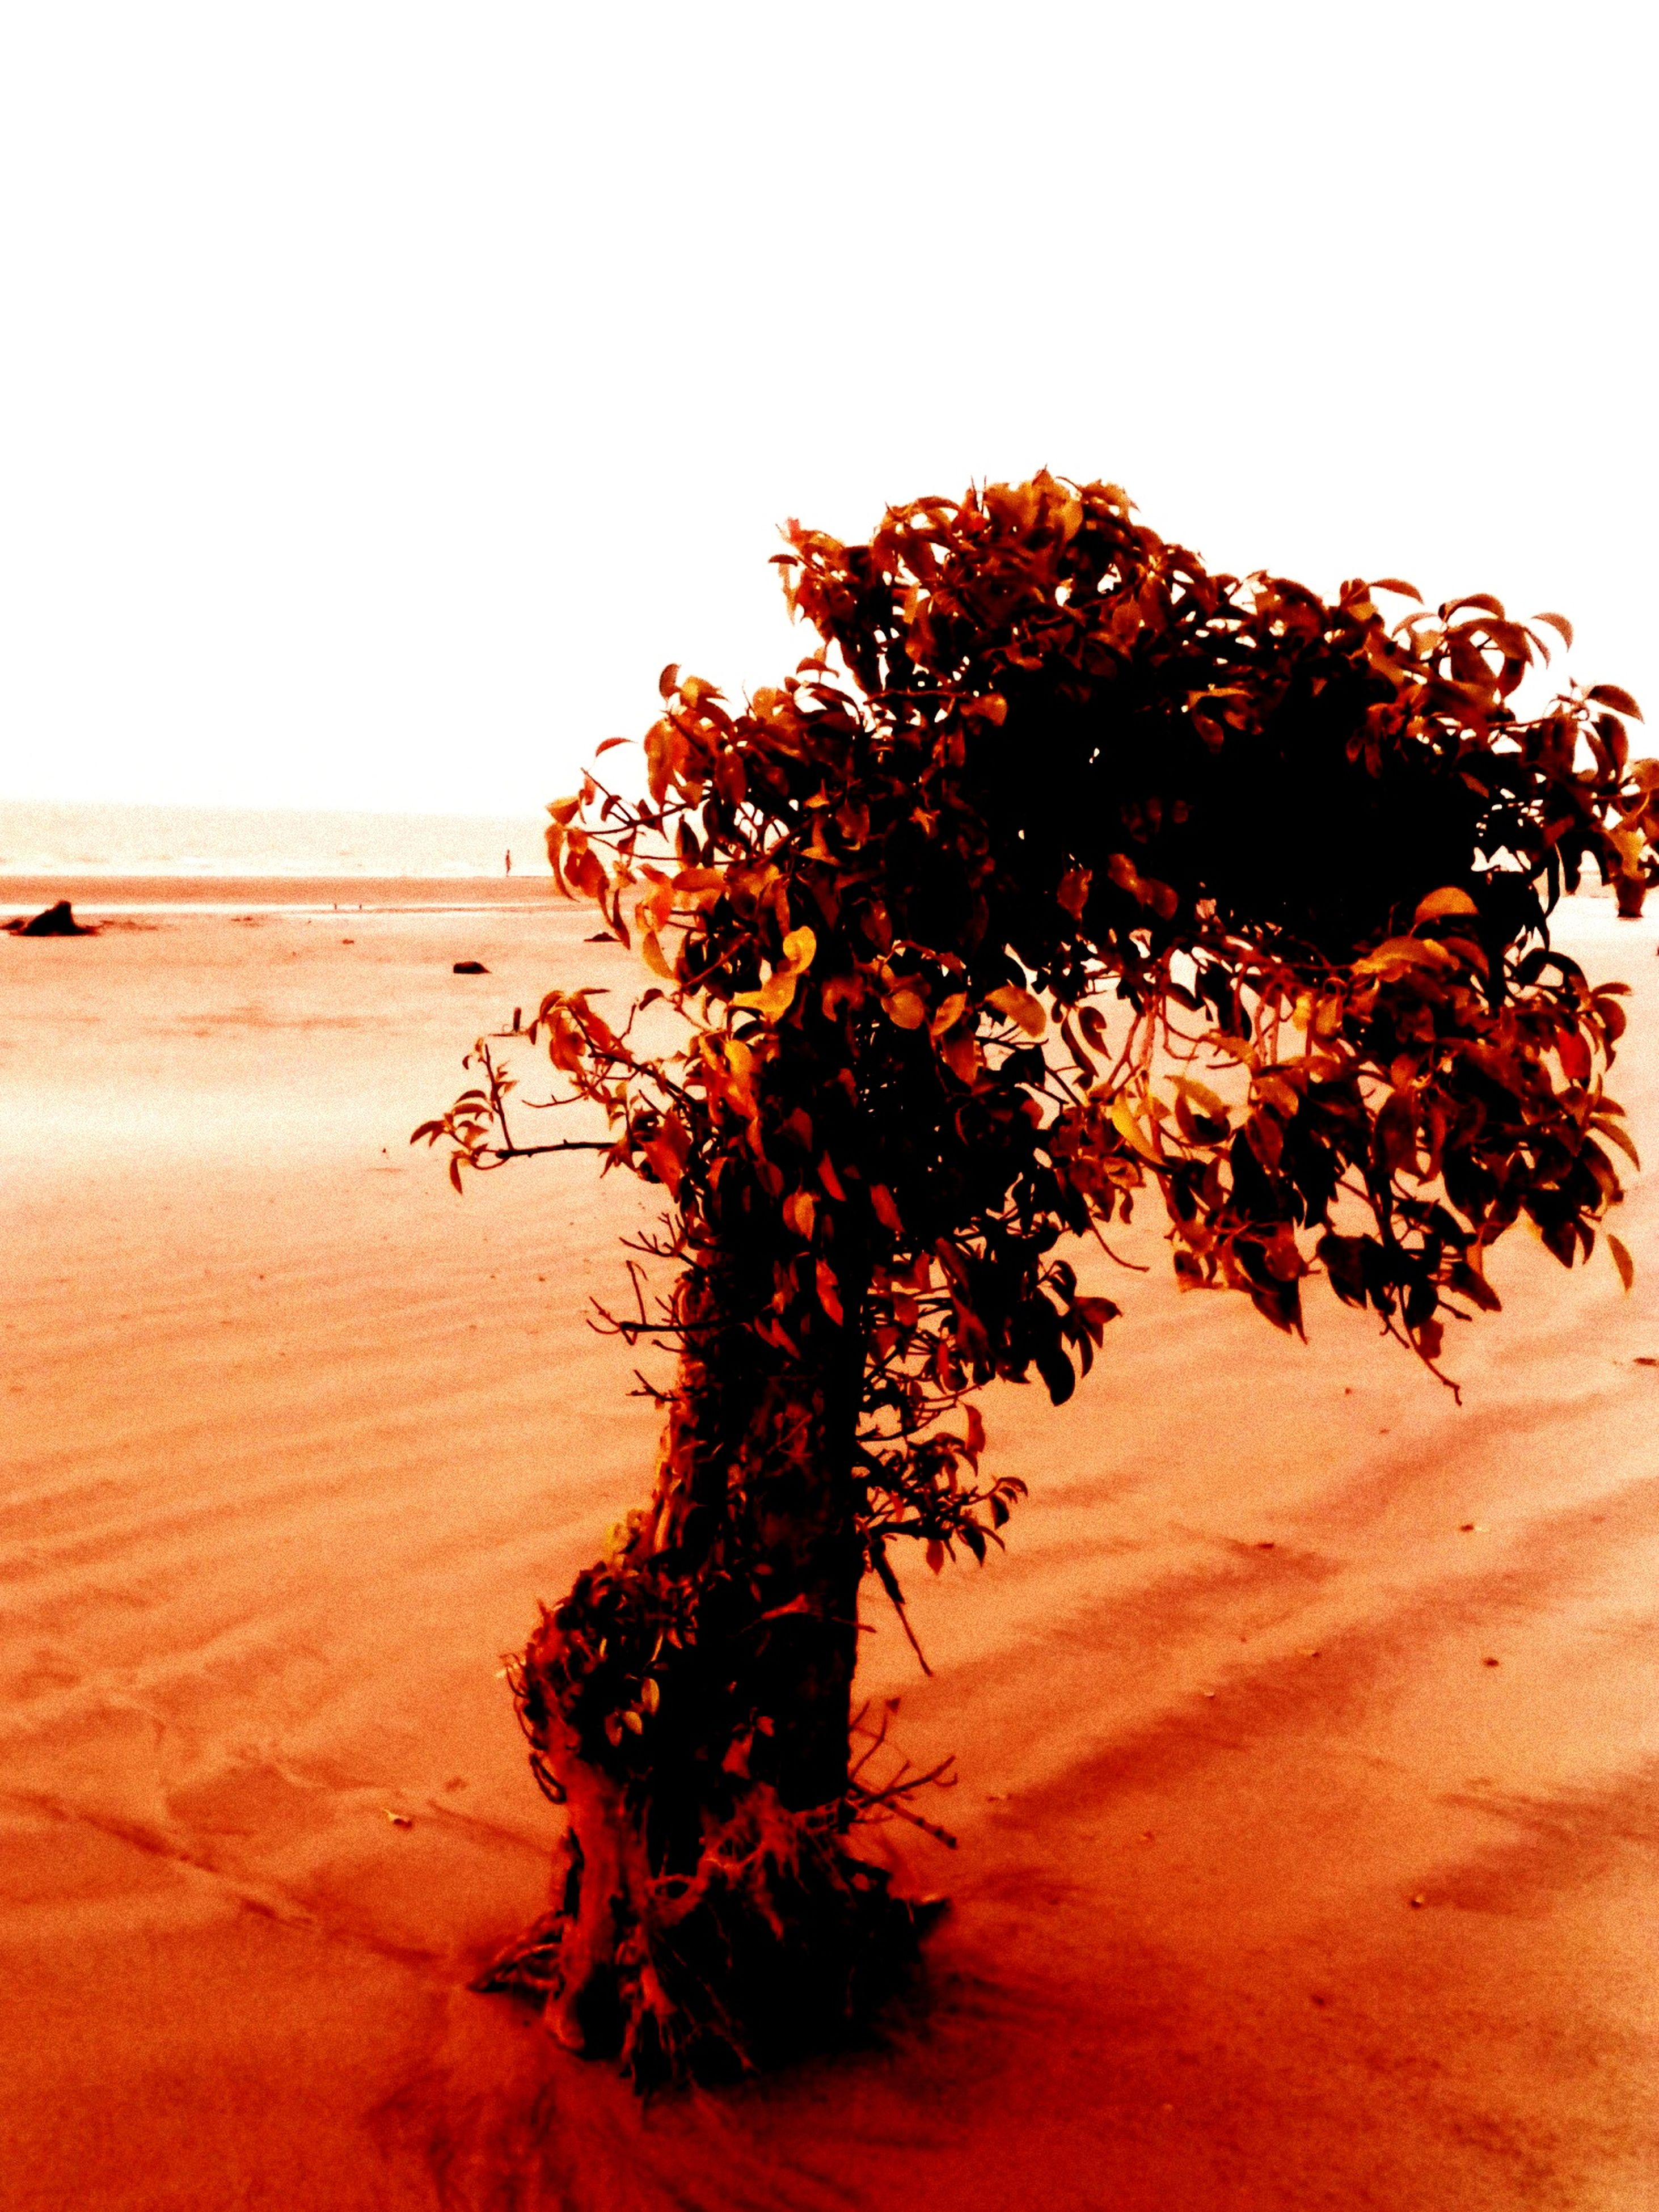 clear sky, sand, tranquility, tranquil scene, nature, beach, desert, copy space, tree, landscape, beauty in nature, red, scenics, arid climate, remote, growth, non-urban scene, sky, no people, dry